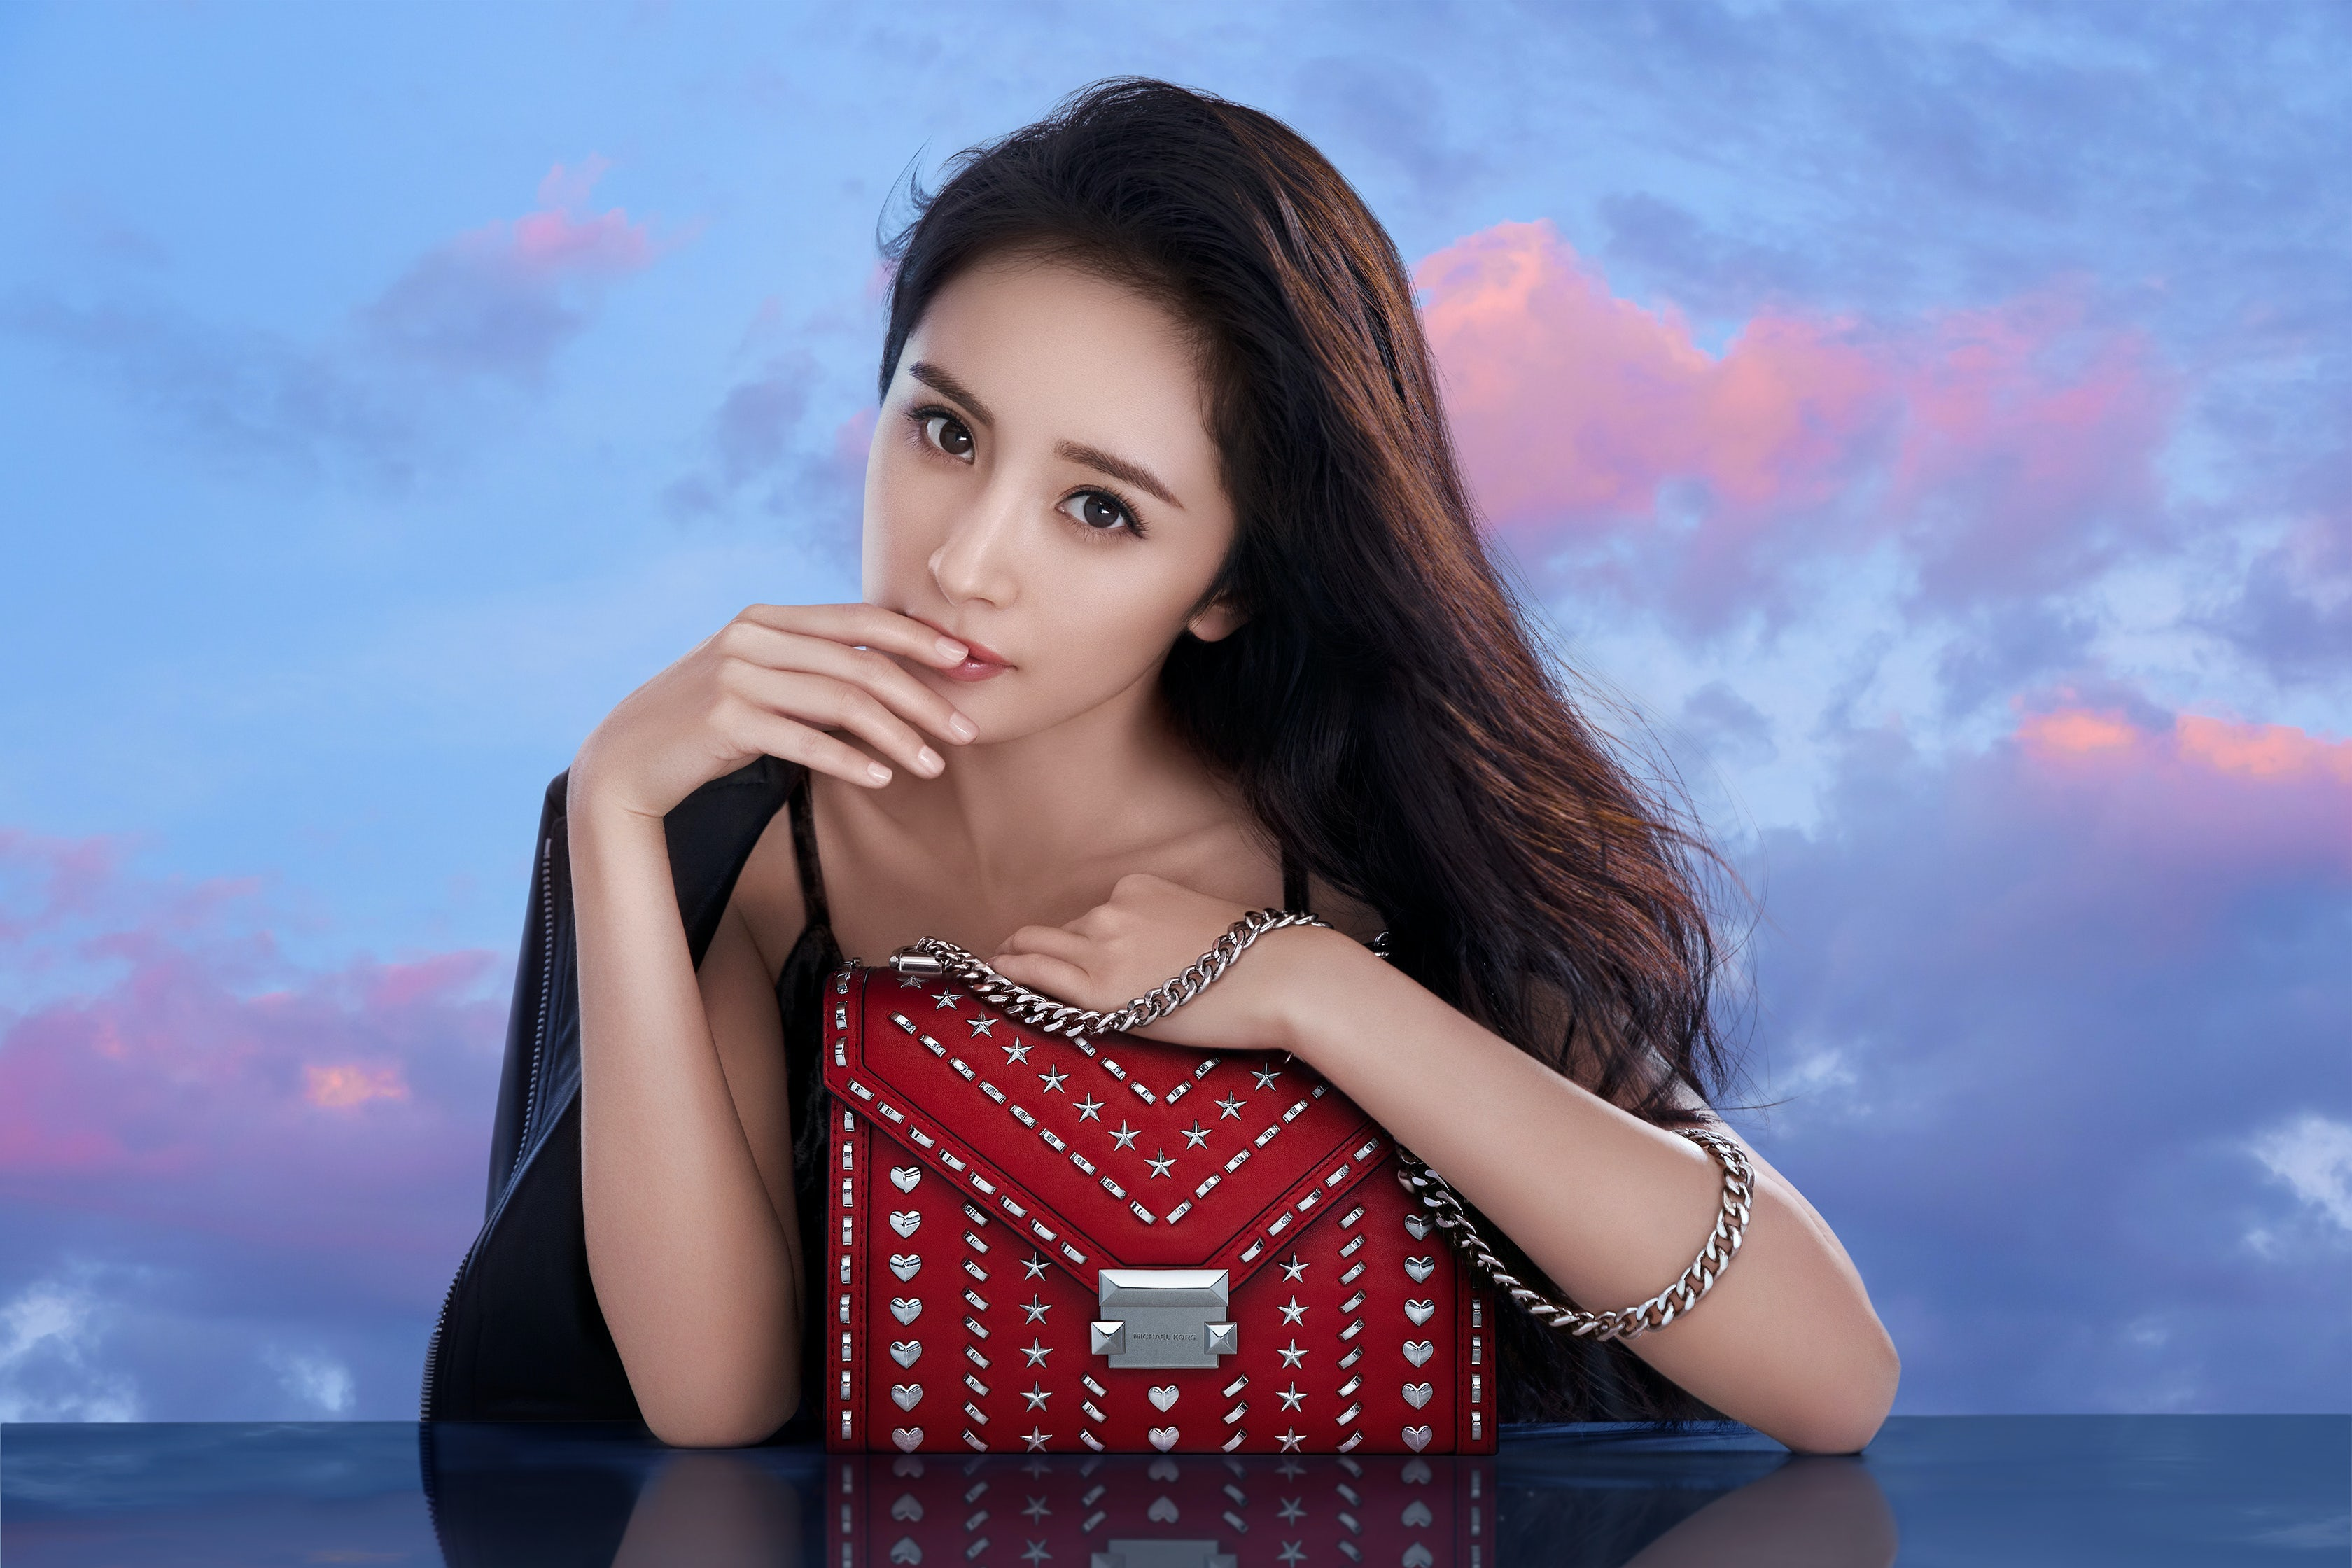 Yang Mi collaborated on a limited edition bag for Qixi in 2018 that was stocked in Michael Kors stores globally. Michael Kors.